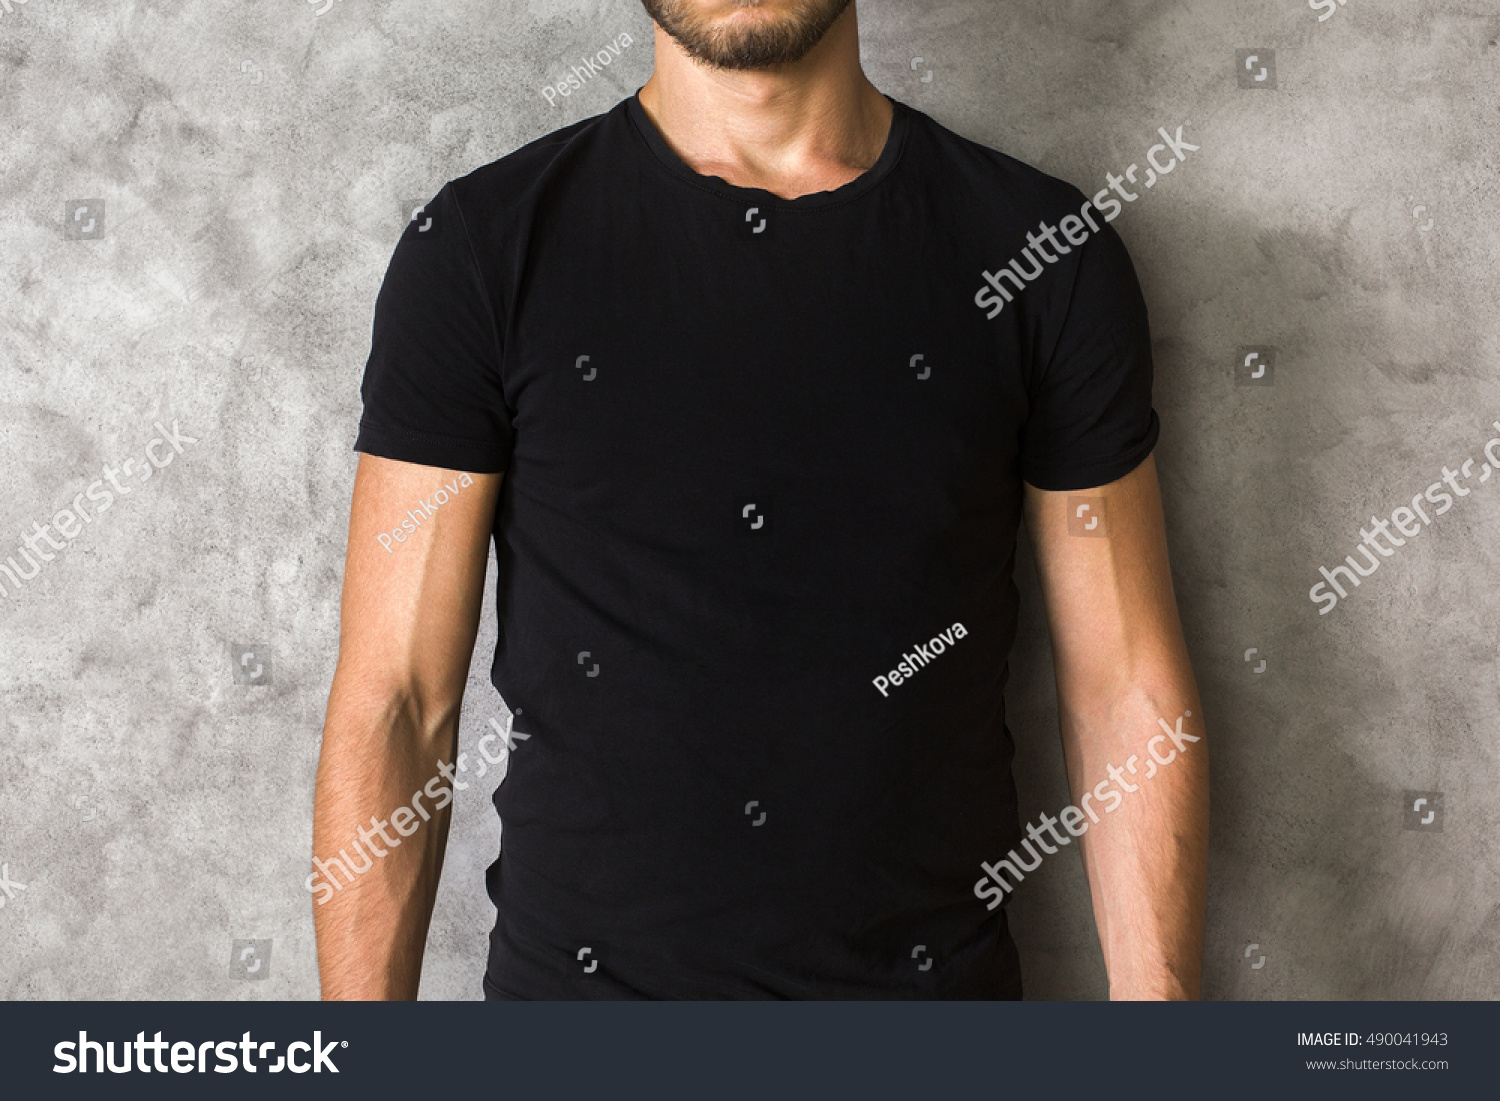 Black t shirt photo - Closeup Of Young Man S Body In Empty Black T Shirt On Textured Concrete Wall Background